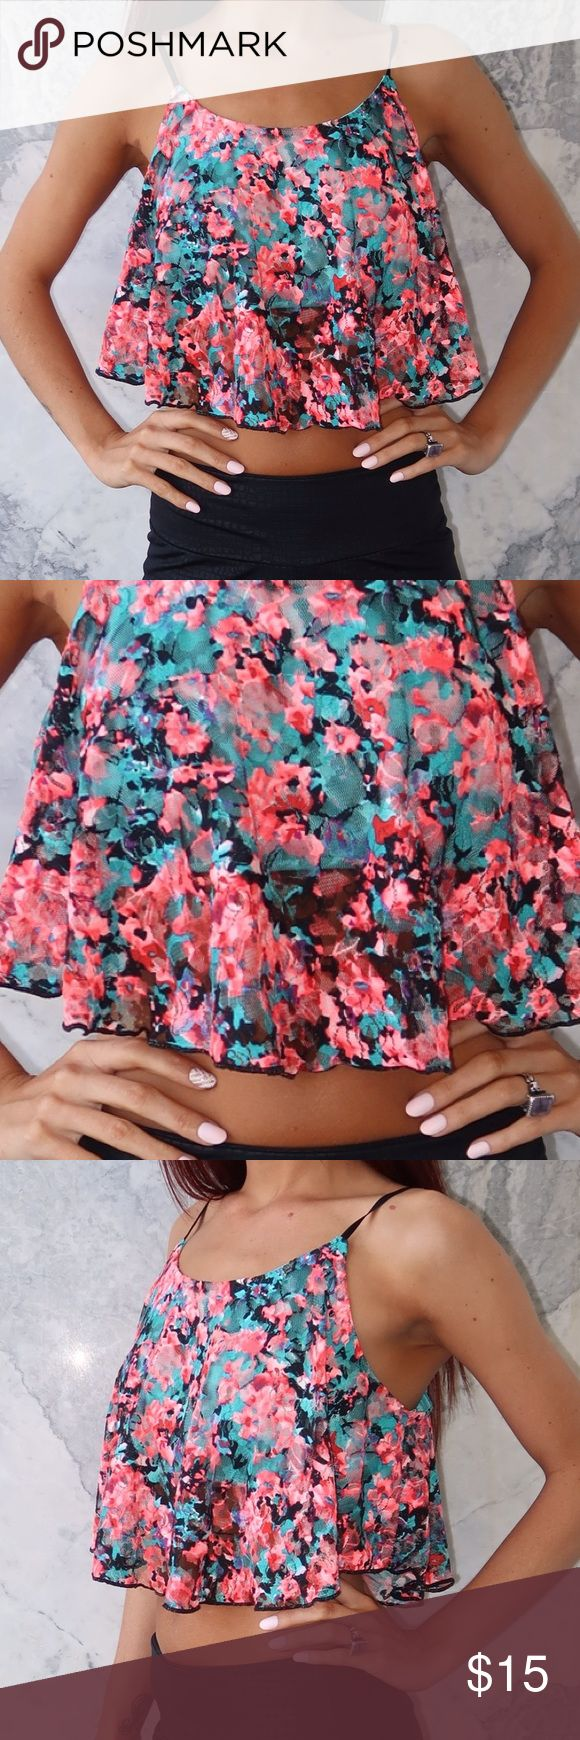 Neon Floral Rose Lace Crop Top PRE LOVED multi coloured floral rose lace crop top with built in bandeau underneath the lace and adjustable spaghetti straps. In great condition like new Tops Crop Tops